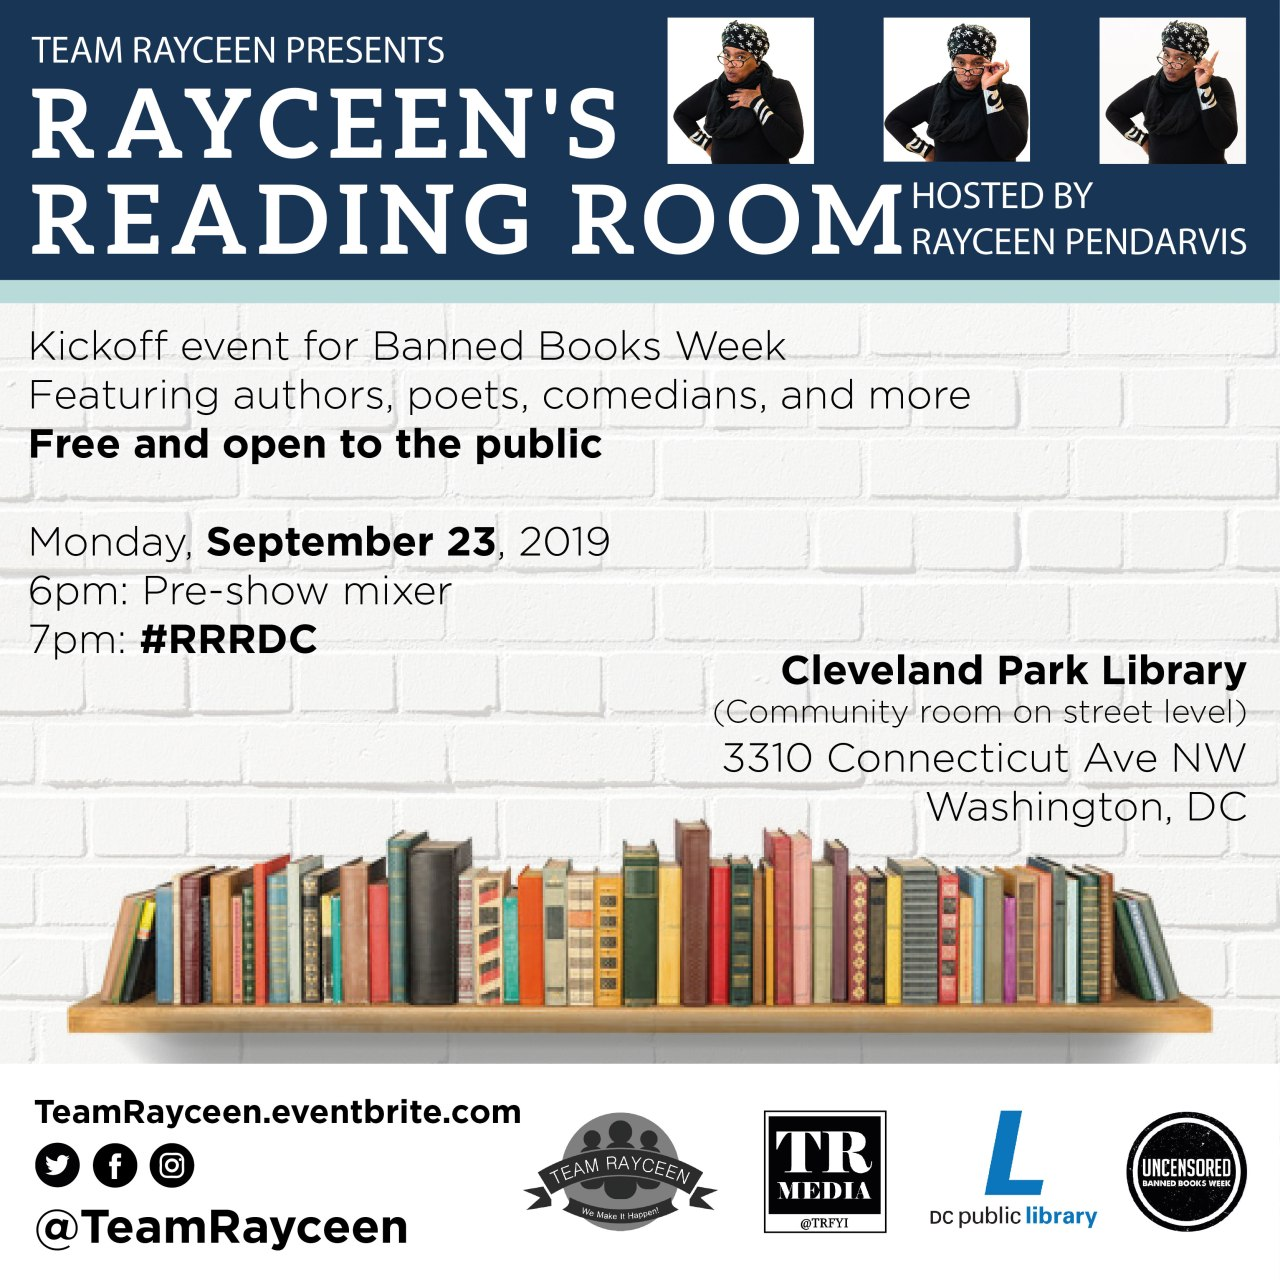 Dwayne Is At Rayceen's Reading Room!